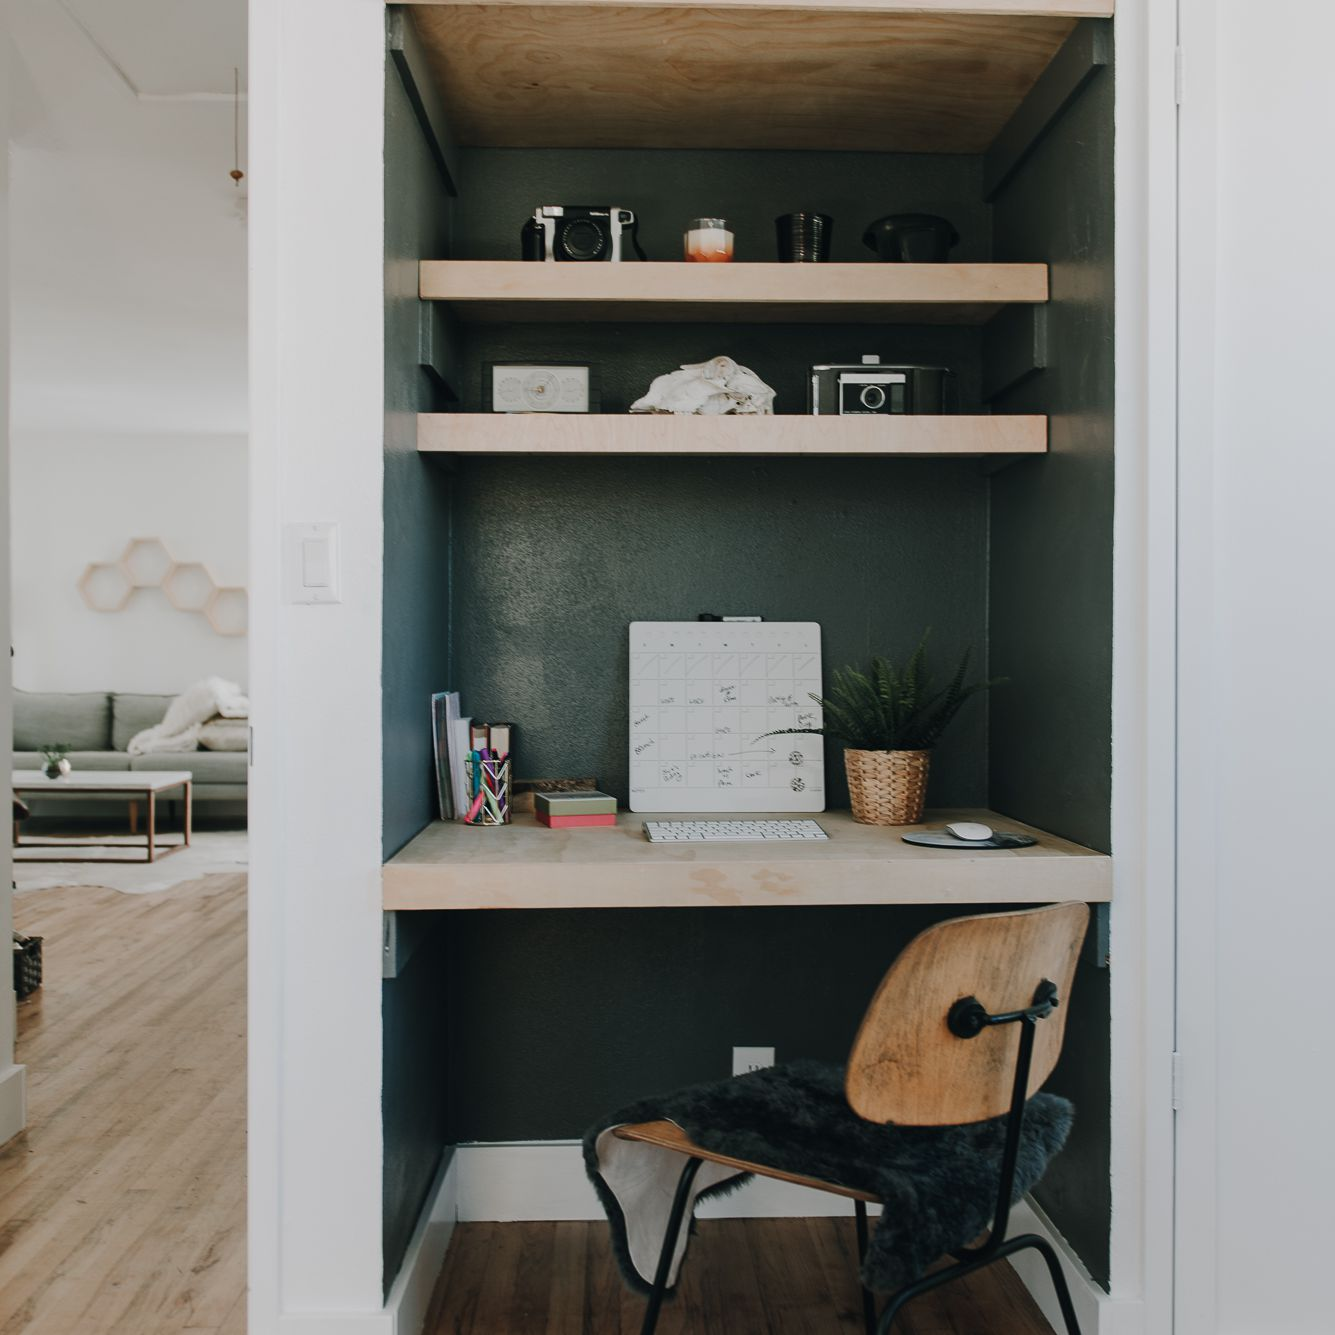 Closet turned home office space with floating desk and shelves